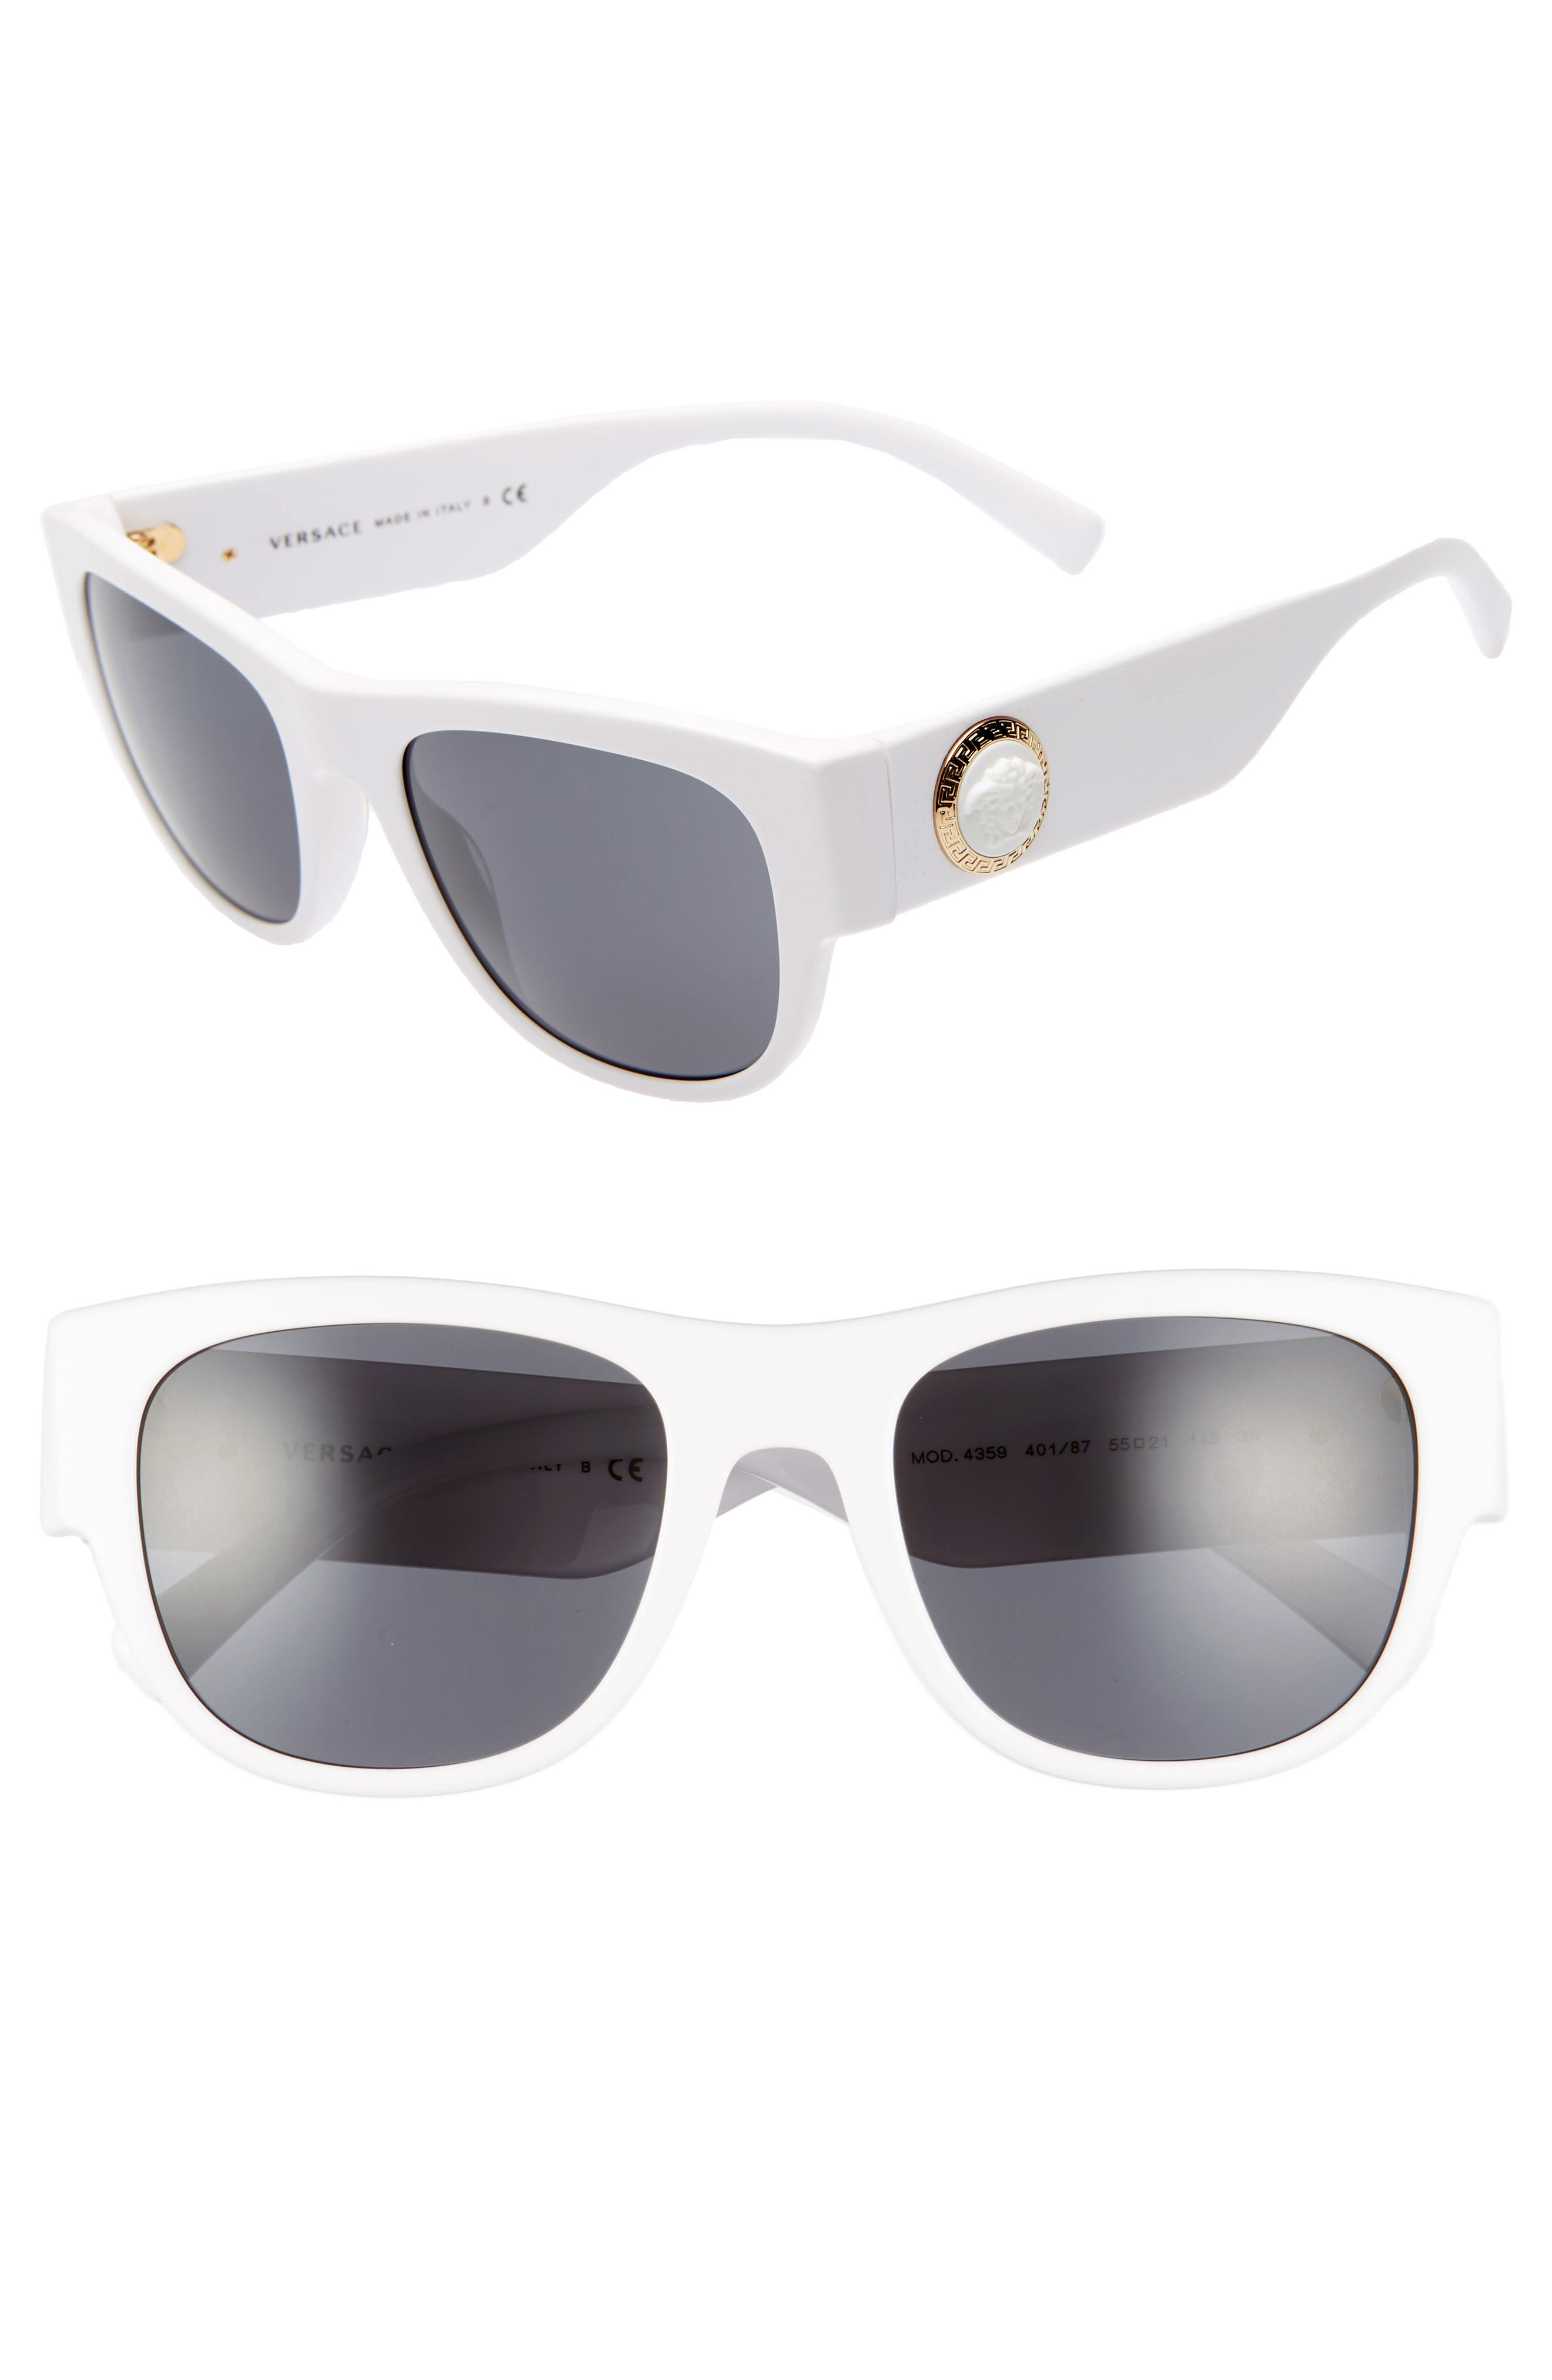 55mm Square Sunglasses,                             Main thumbnail 1, color,                             WHITE/ GREY SOLID